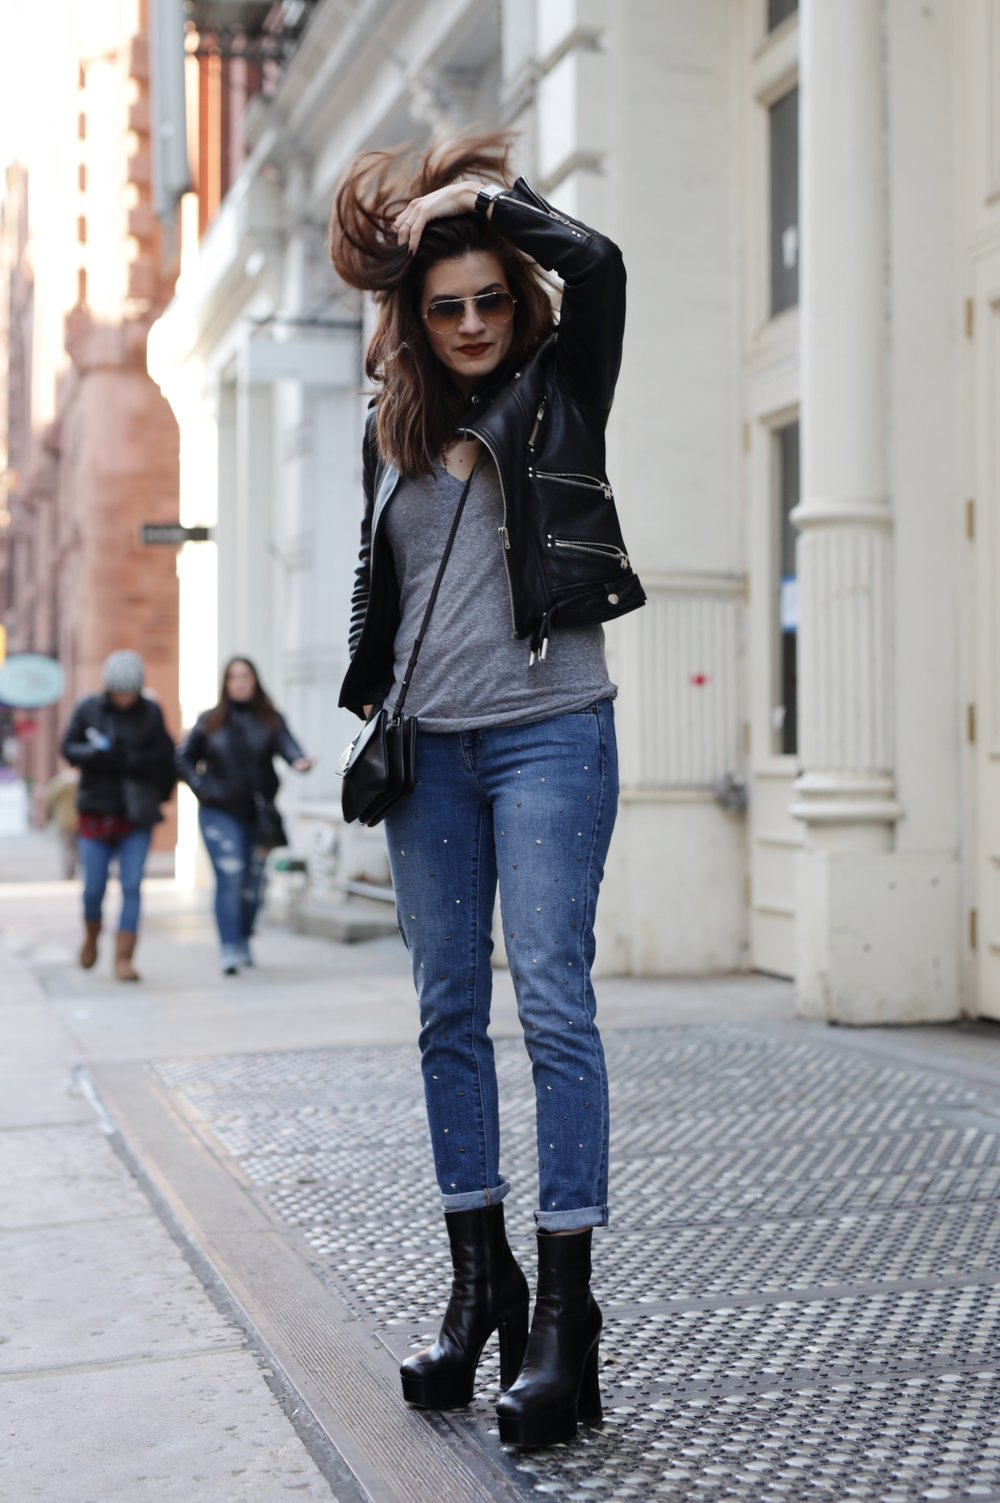 NYC street style - Saint Laurent platform boots, leather moto jacket from The Kooples, YSL cross body bag and Gap studded jeans_6954.JPG